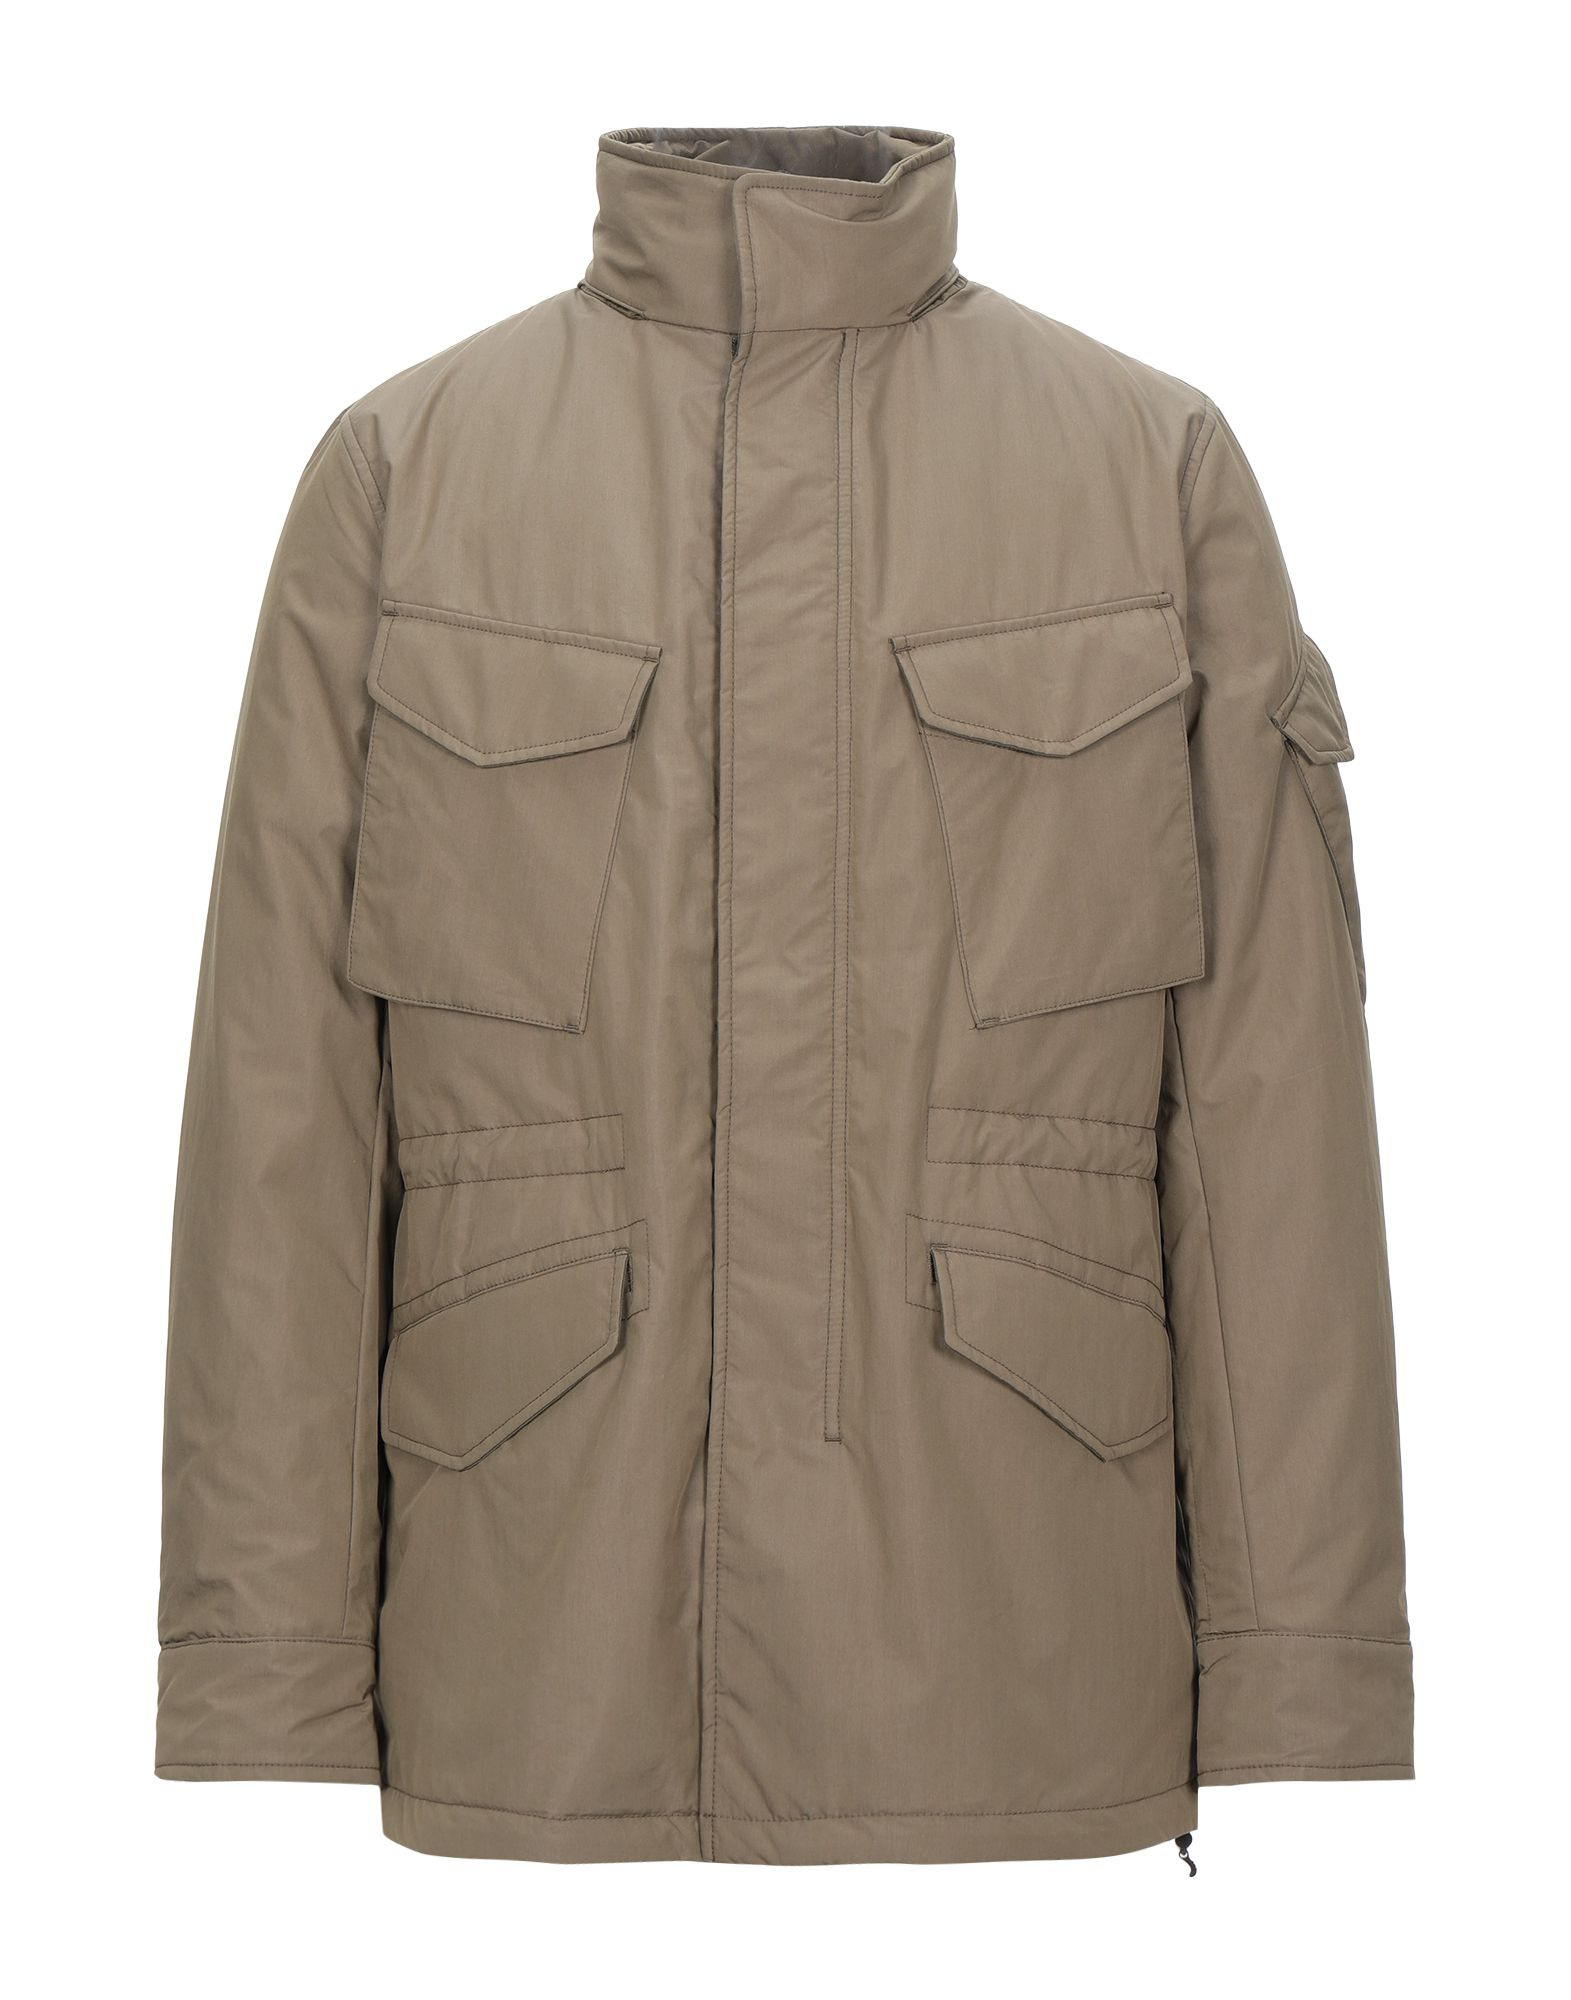 RAG & BONE Synthetic Down Jackets - Item 41981083